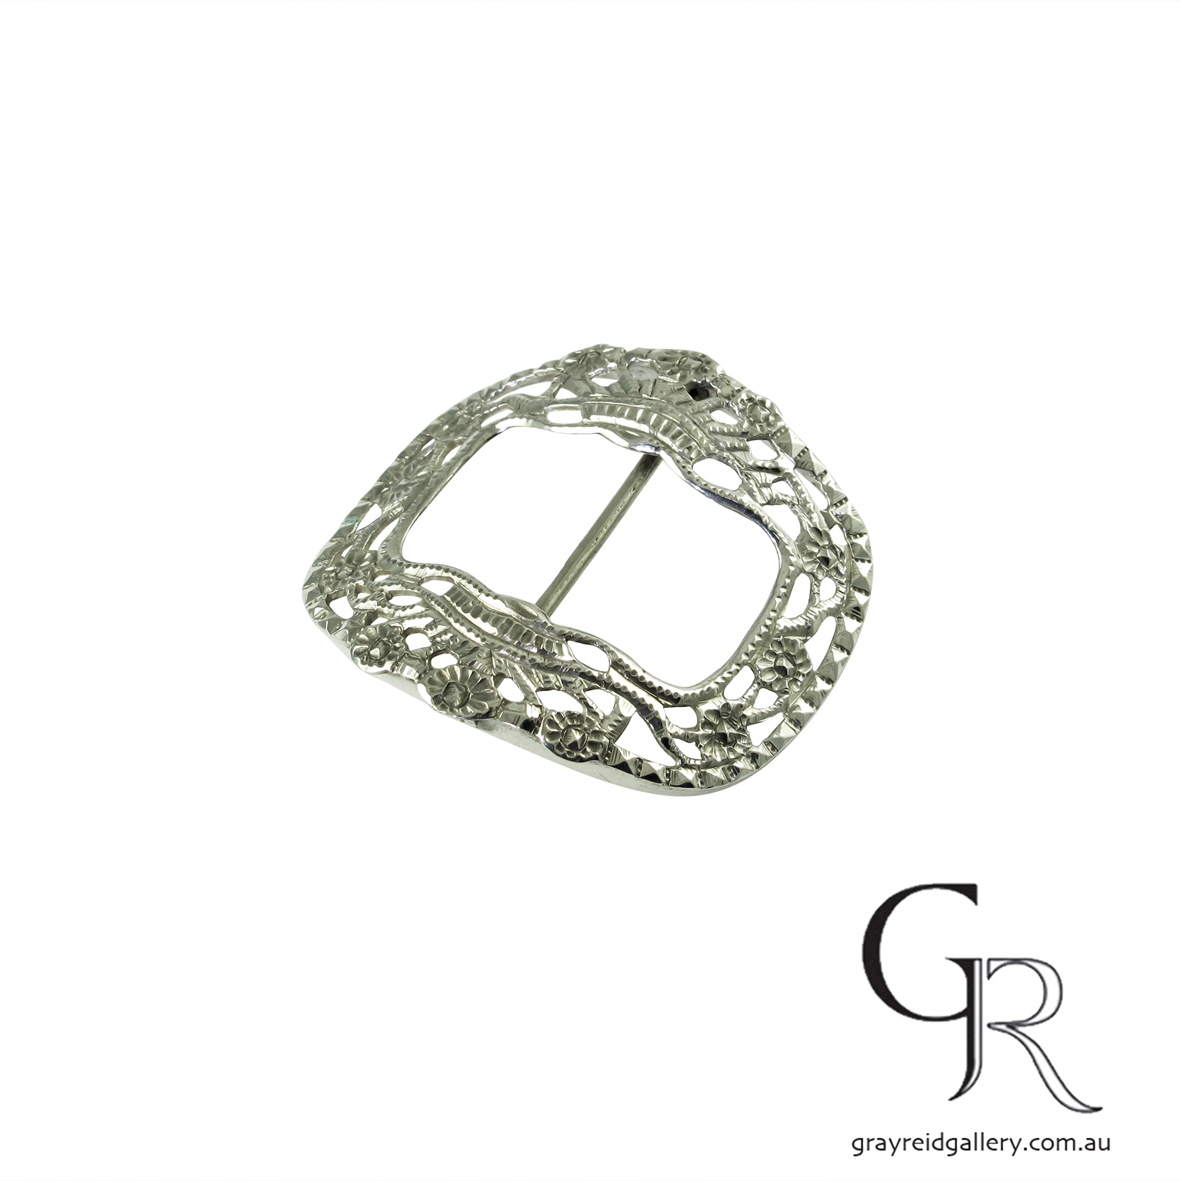 antiques and collectables melbourne sterling silver belt buckle Gray Reid Gallery 13.jpg